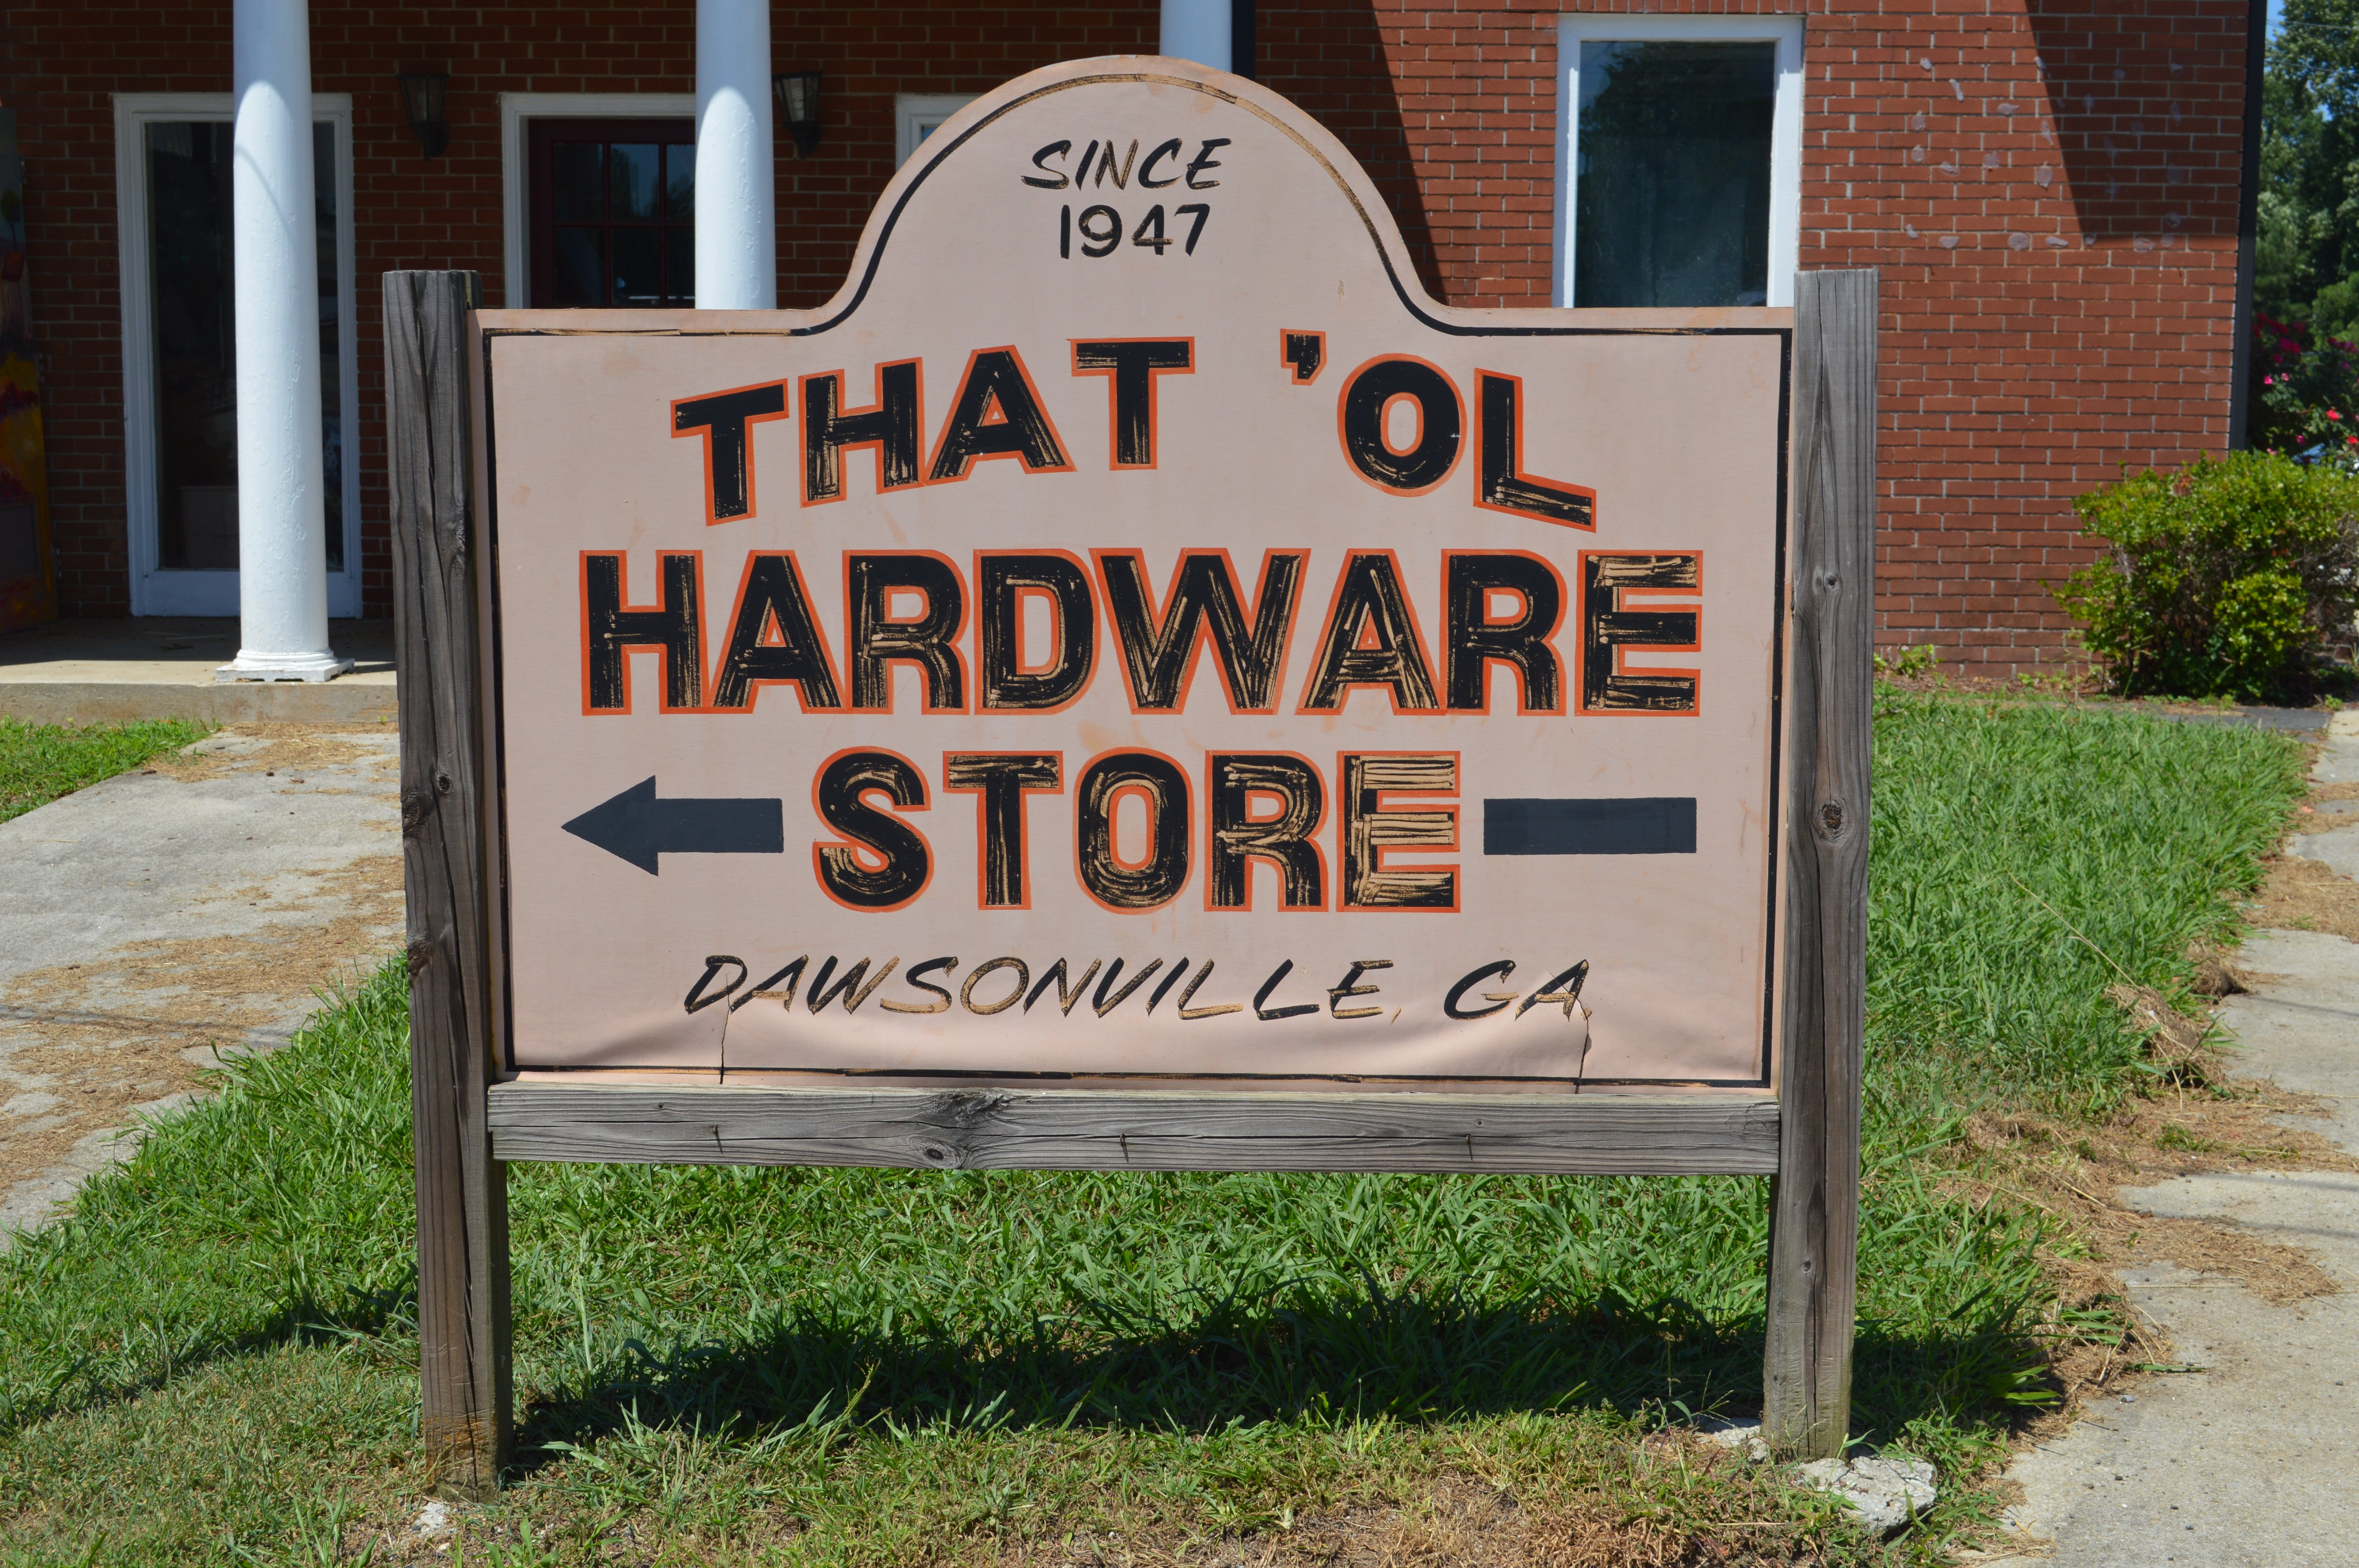 Hardware Store pic 4